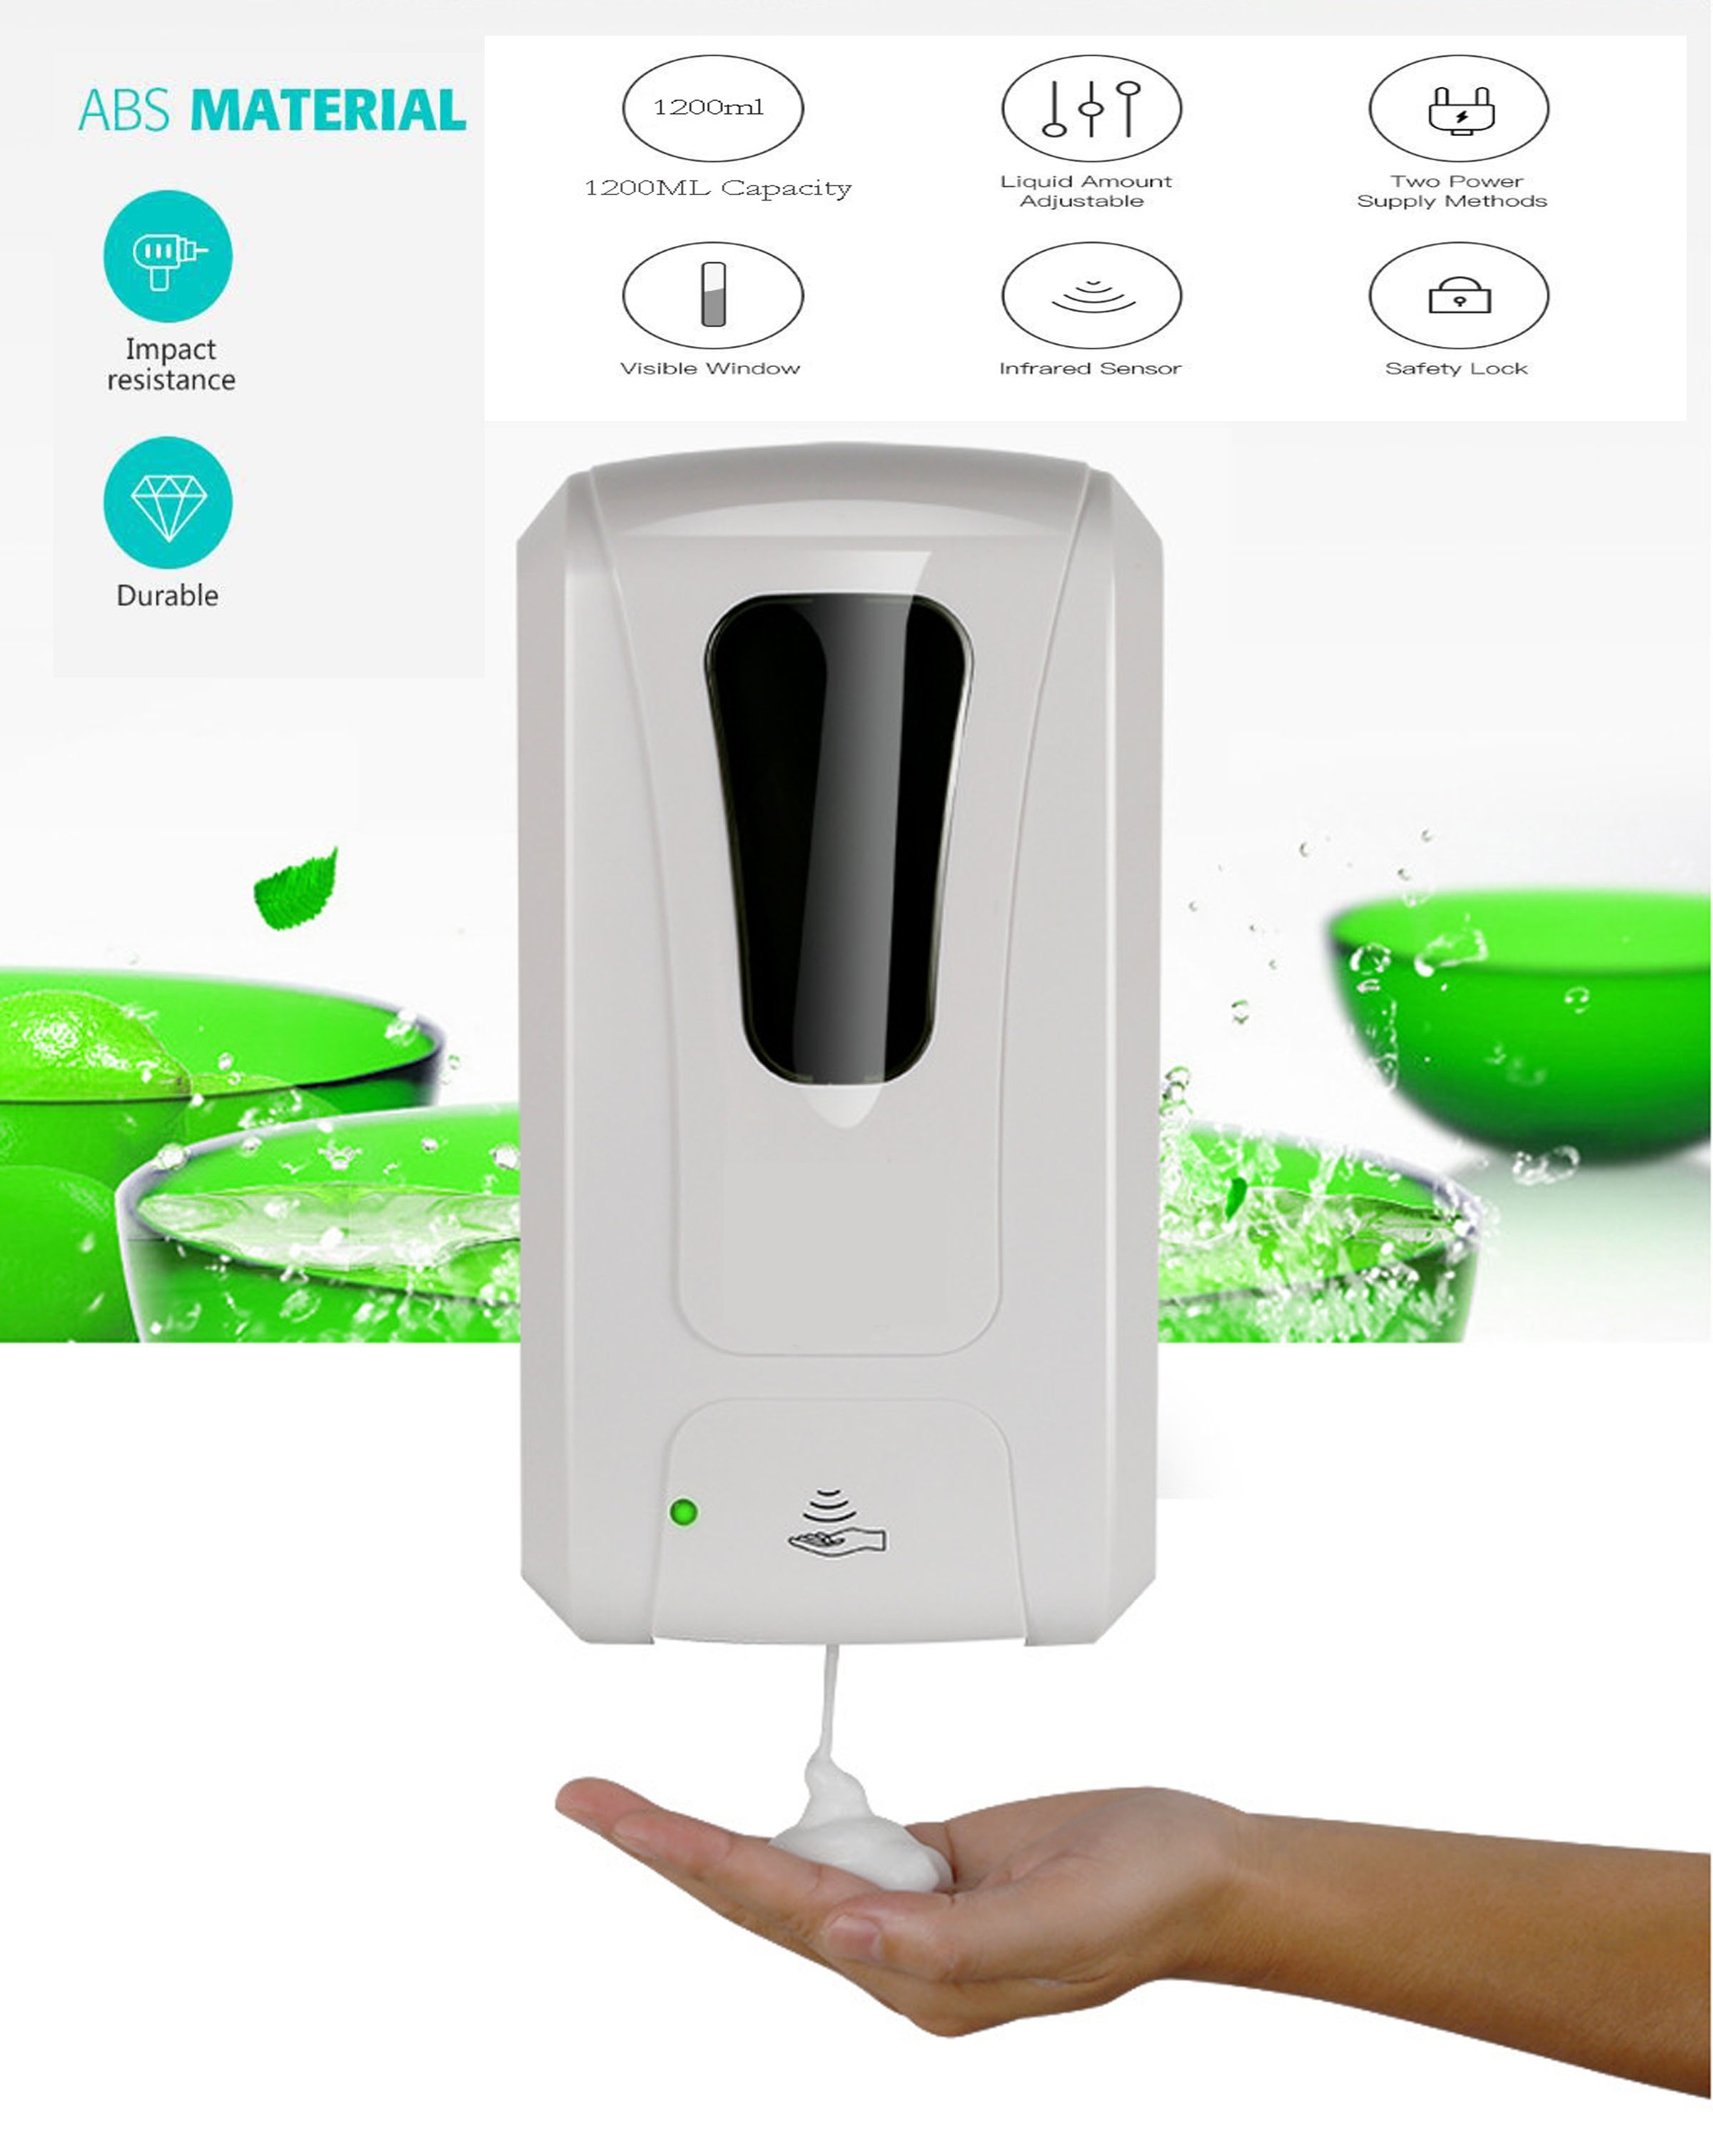 Wall Mounted Sensor Touchless Automatic Foam Soap Dispenser Bathroom Infrared Induction Smart Foam Soap Dispenser 1200ml